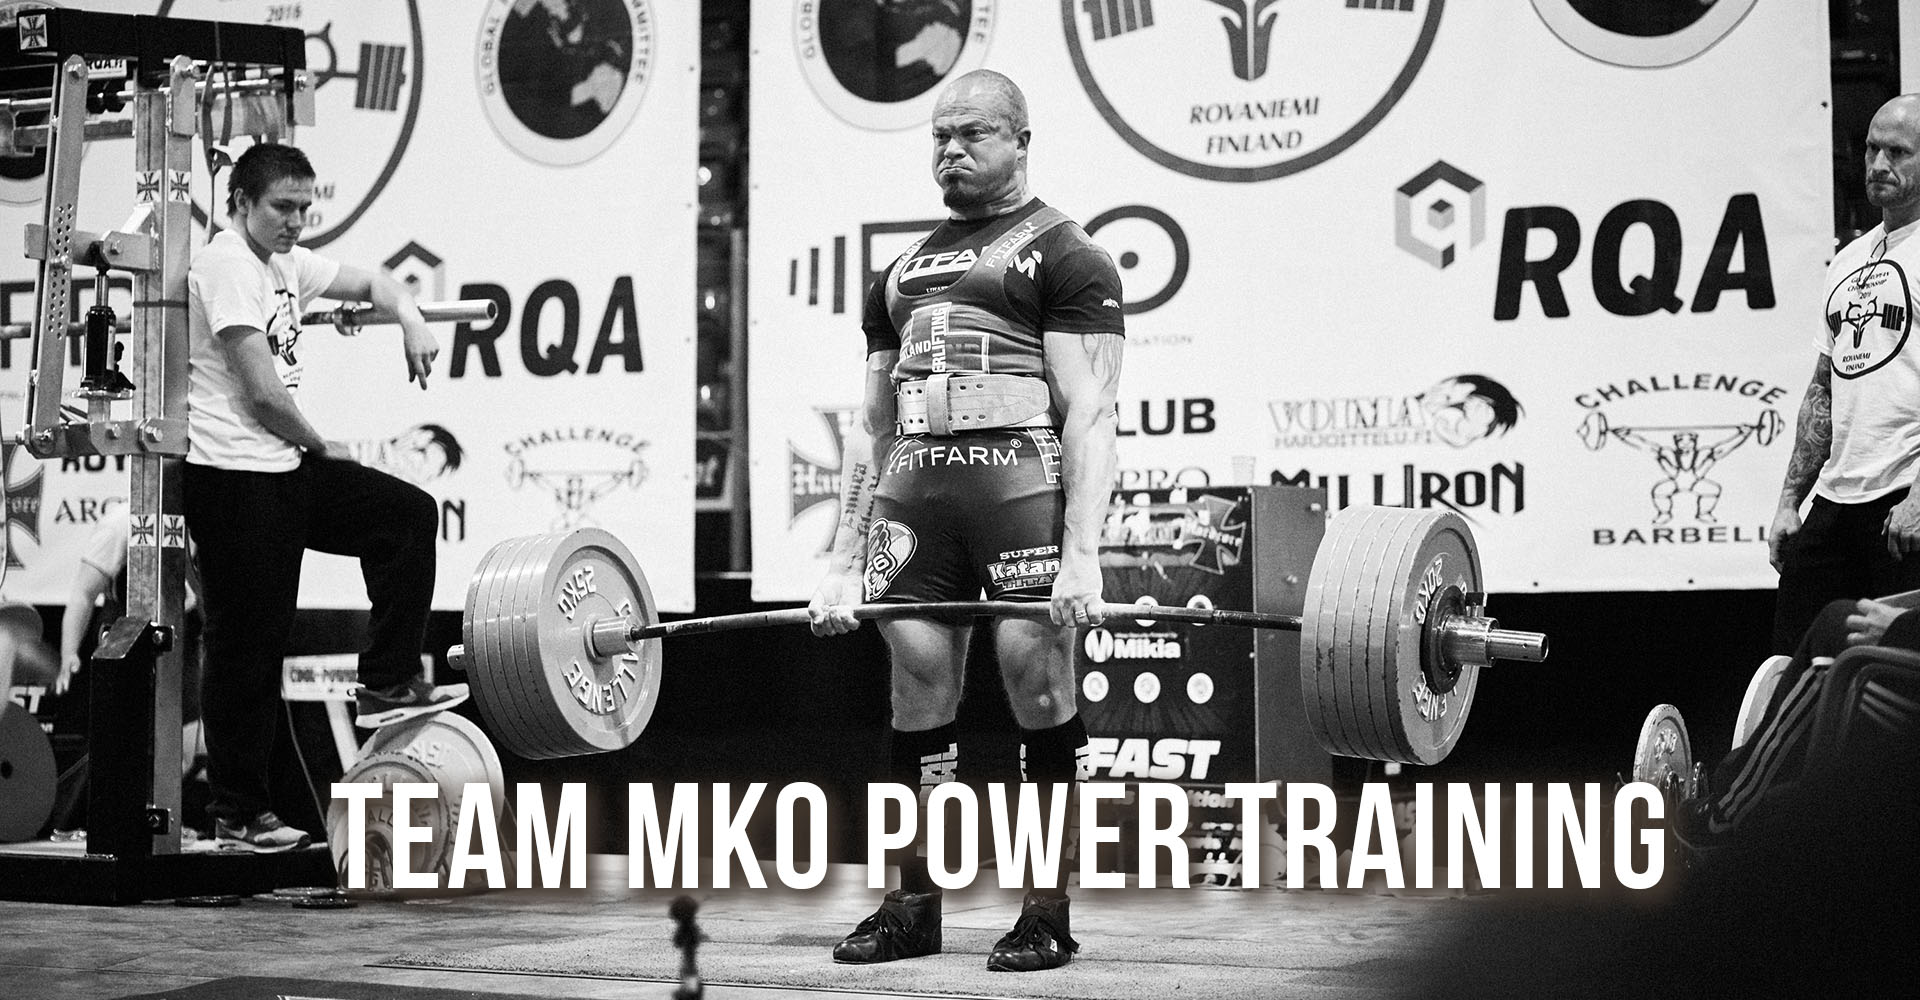 TEAM MKO POWER TRAINING - TAMPERE